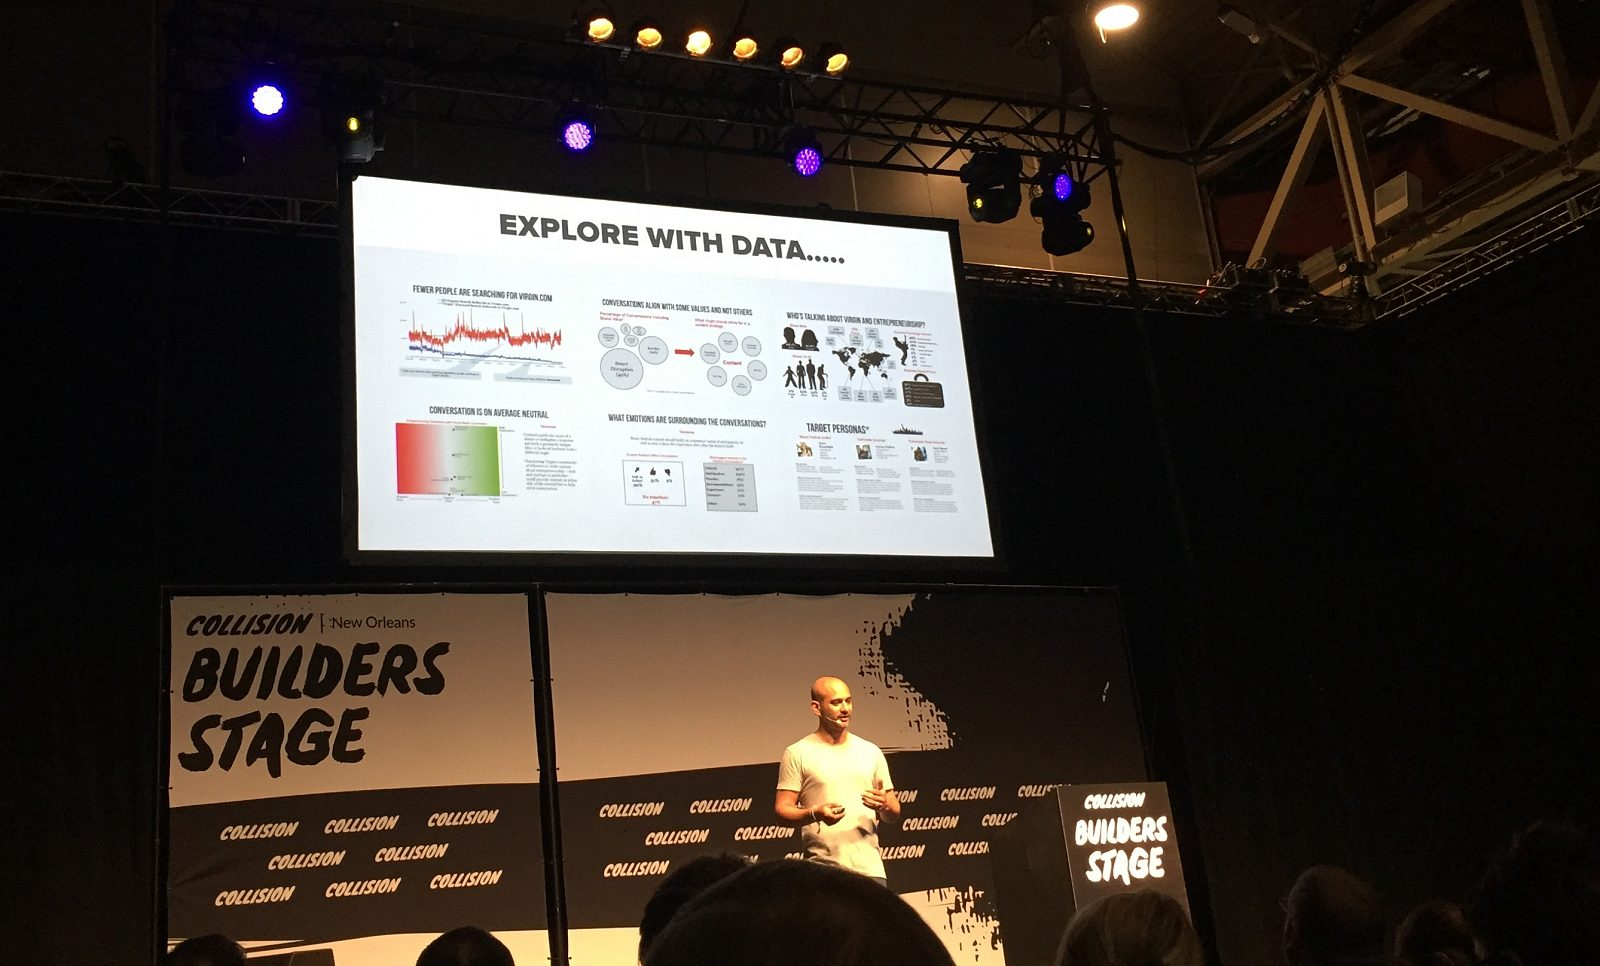 Collision Conference - Explore with data